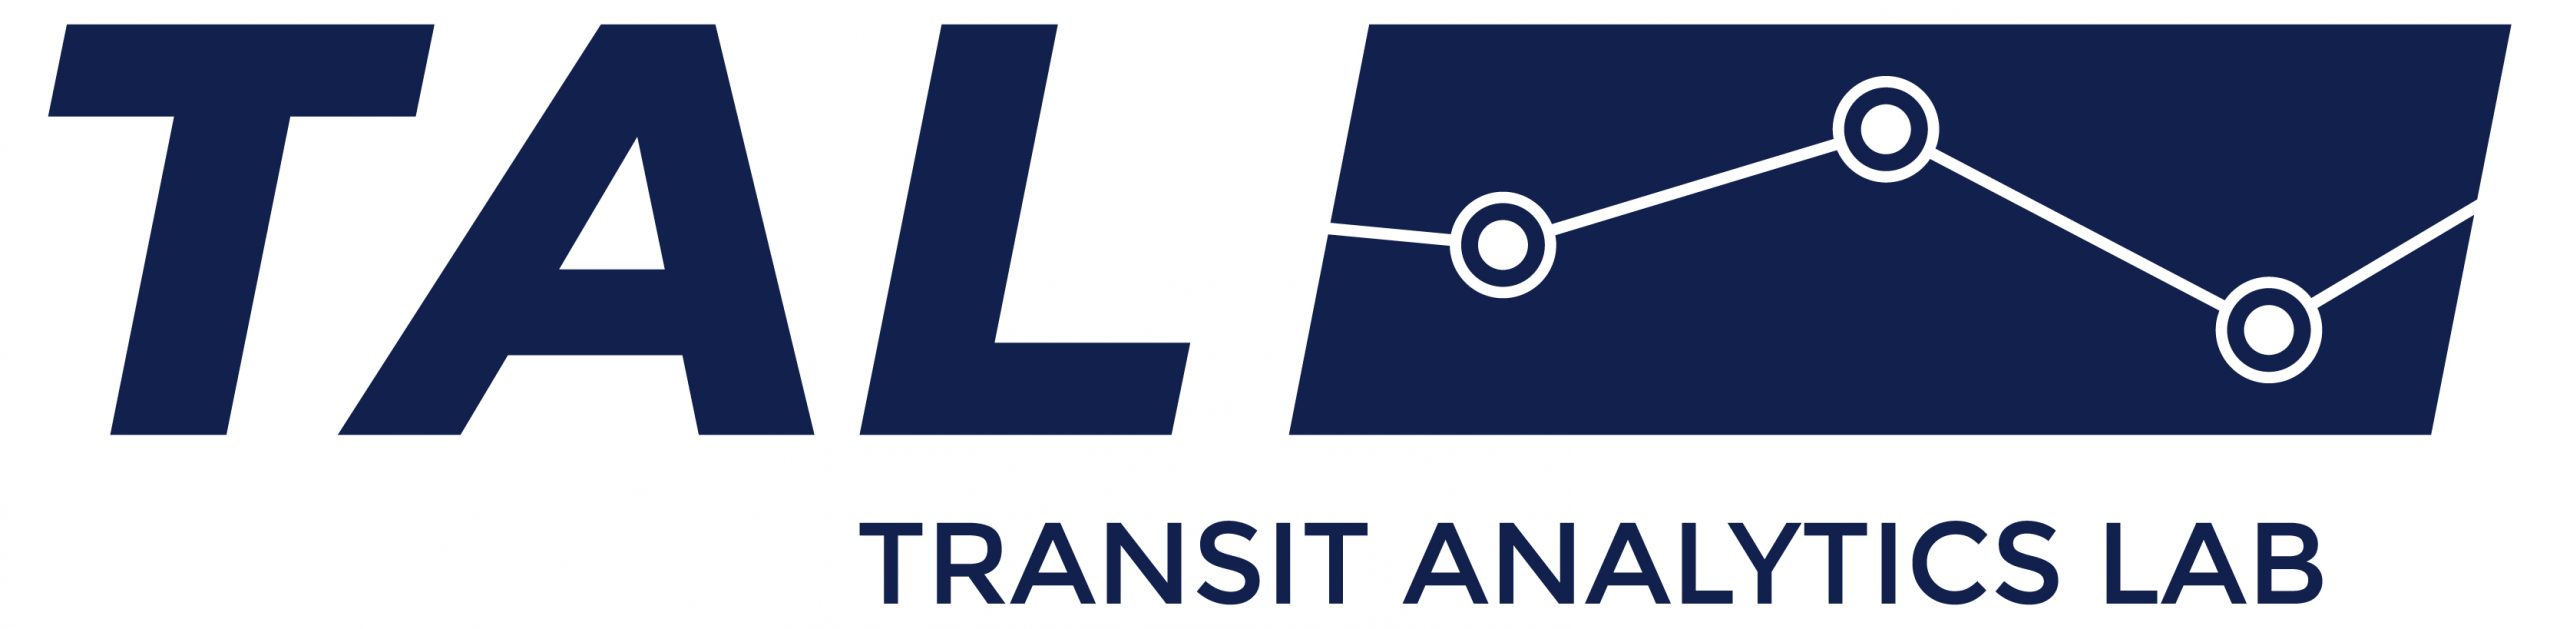 Transit Analytics Lab logo